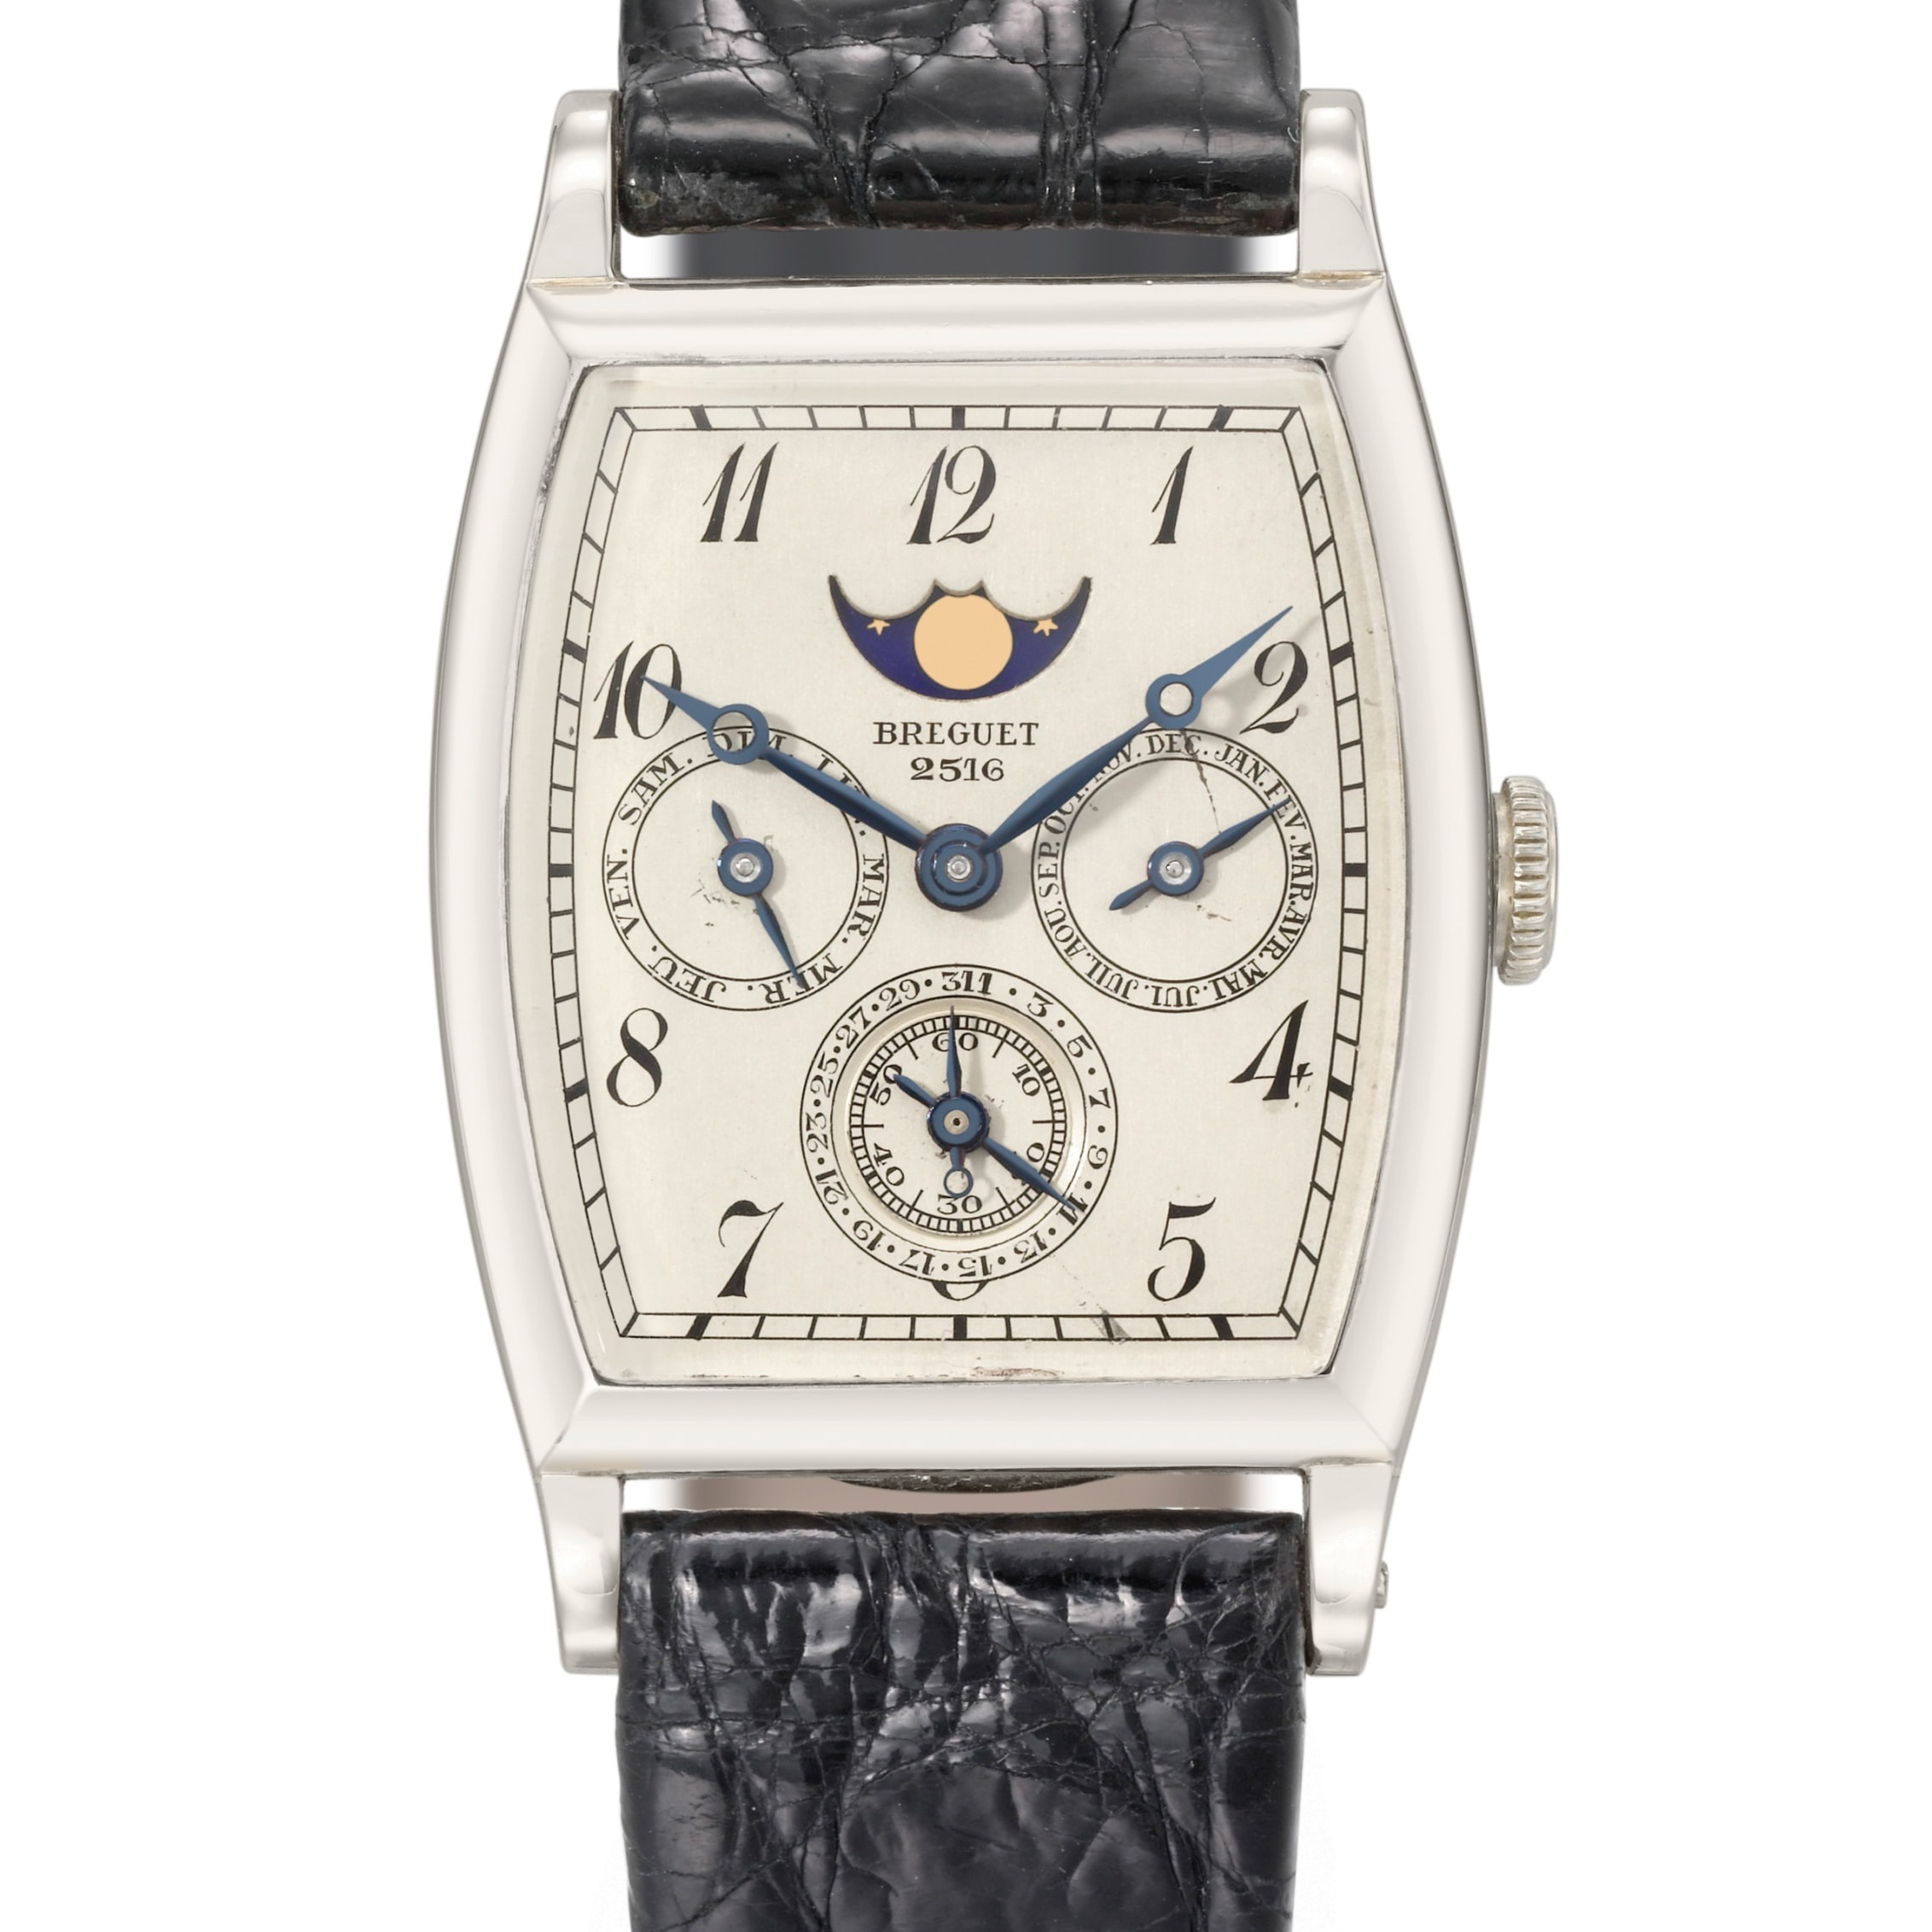 Historical Perspectives: (Possibly) The World's First Perpetual Calendar Wristwatch, From Breguet, Revisited On Leap Day 2016 Historical Perspectives: (Possibly) The World's First Perpetual Calendar Wristwatch, From Breguet, Revisited On Leap Day 2016 breguet 2516 crop